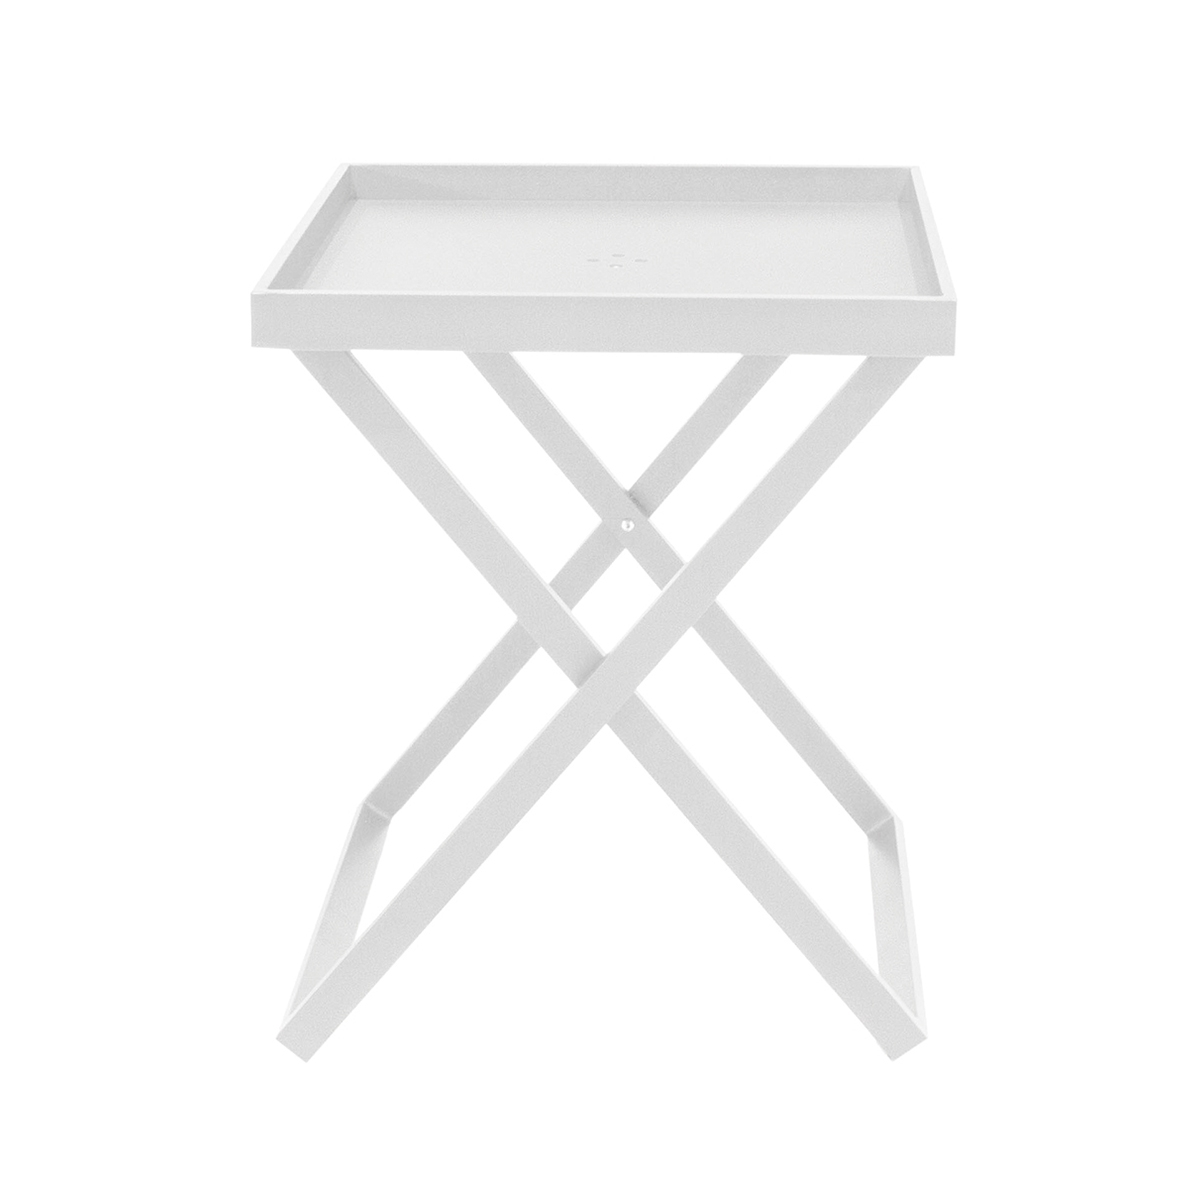 Jardin Outdoor Table Relevable Basse Design De Zendart hxdrstQC